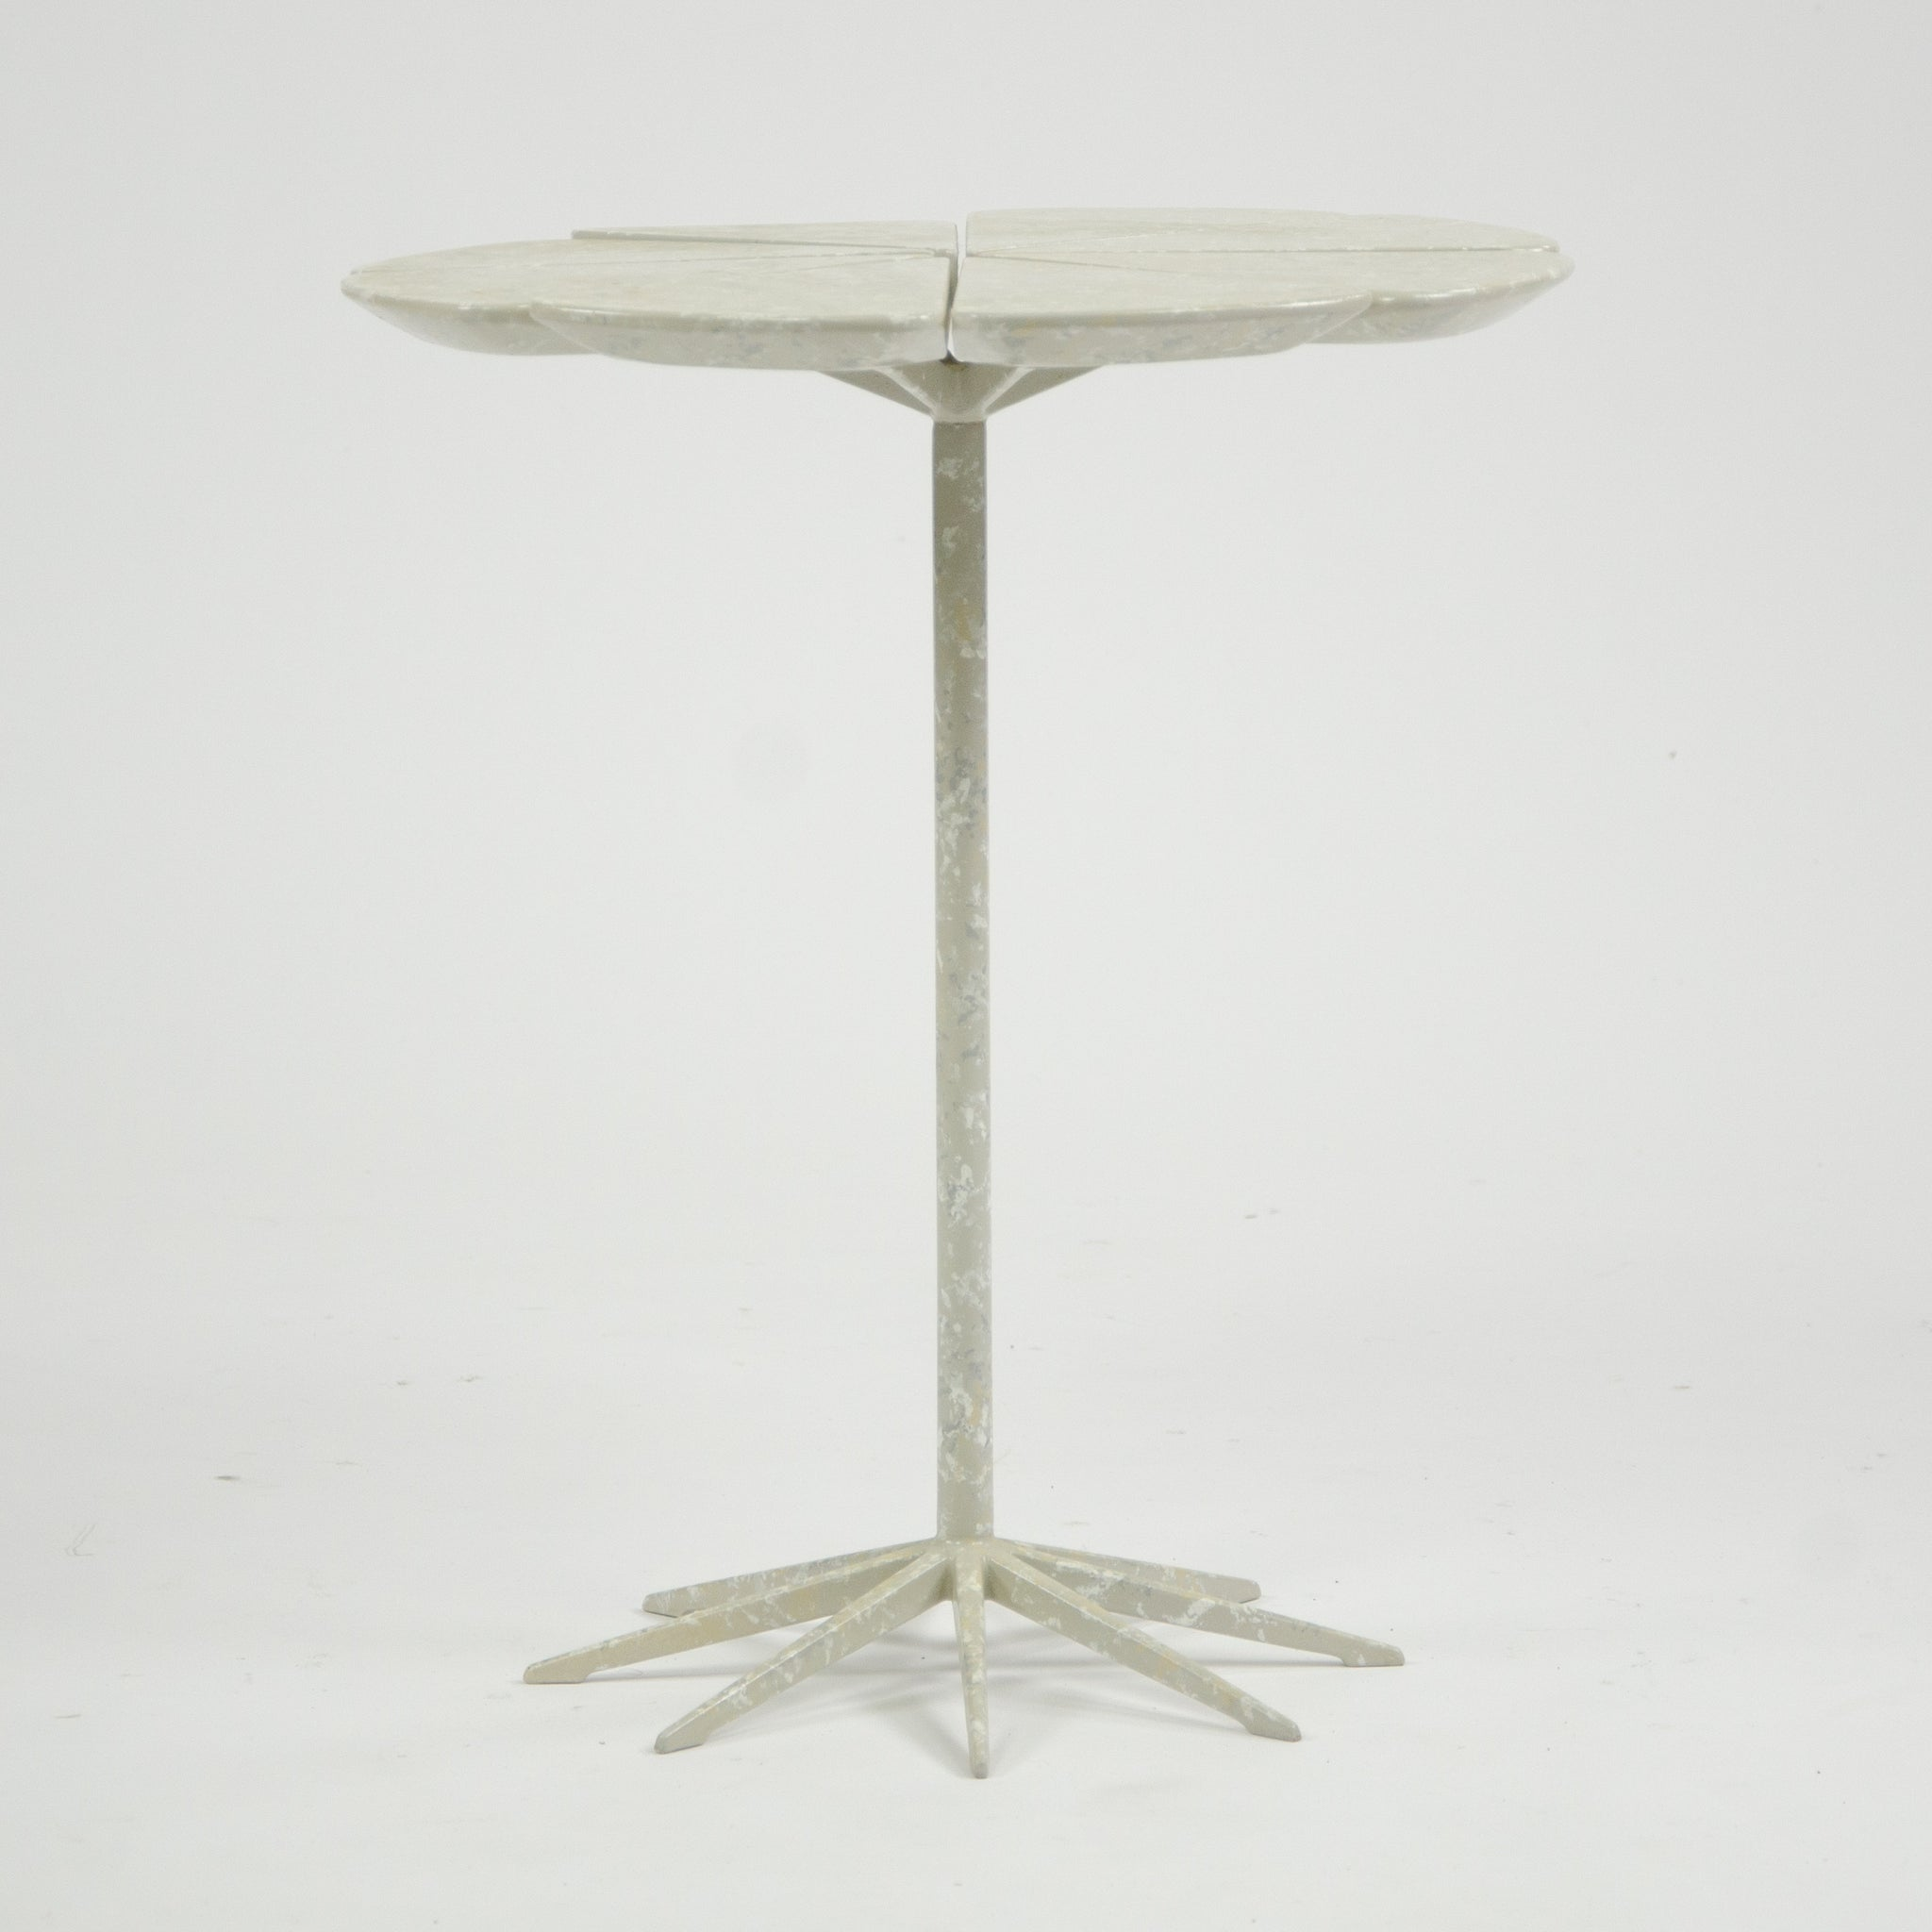 SOLD 1960's Knoll Richard Schultz Petal Table Rare Enameled Redwood